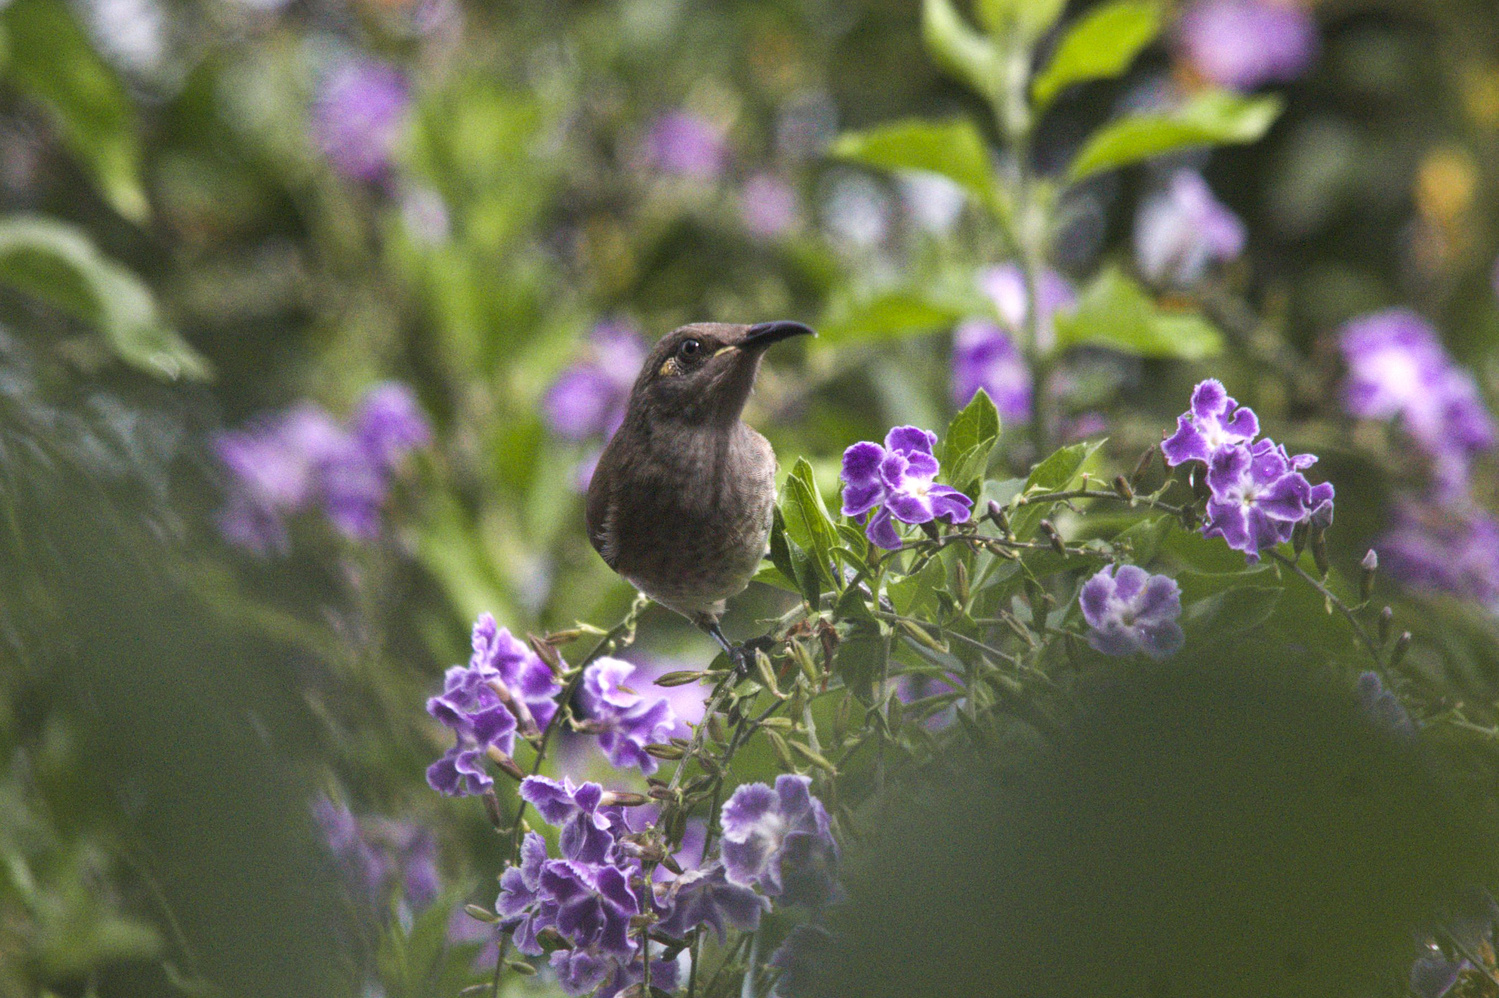 Honey eater in the flowers by Jeremy Martignago